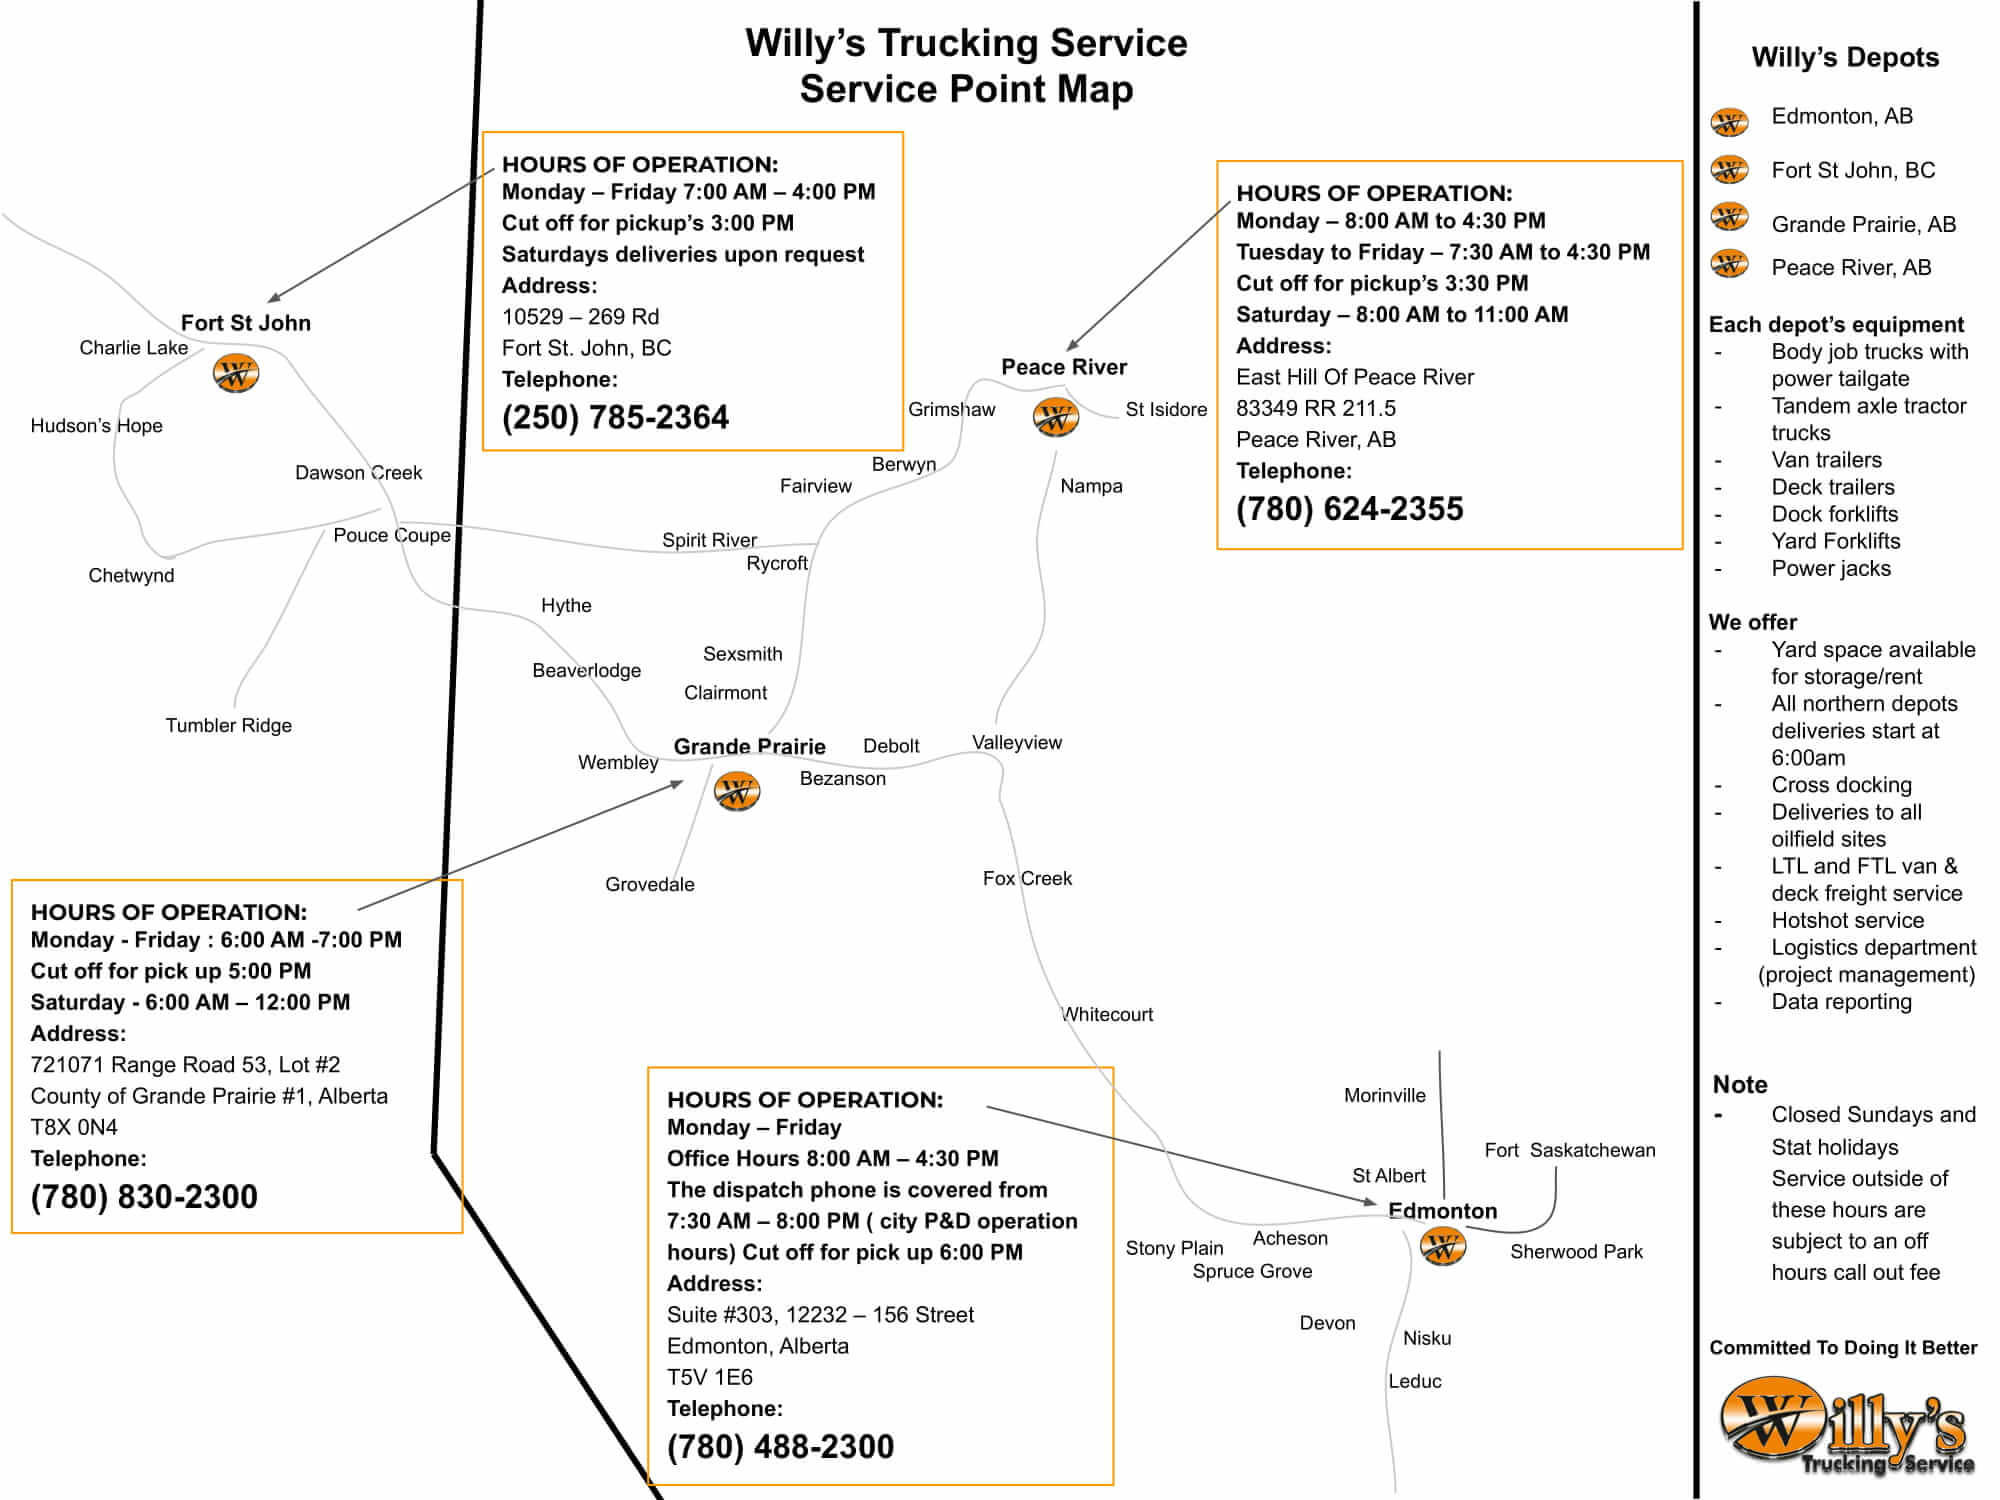 Willy's trucking service map 2020